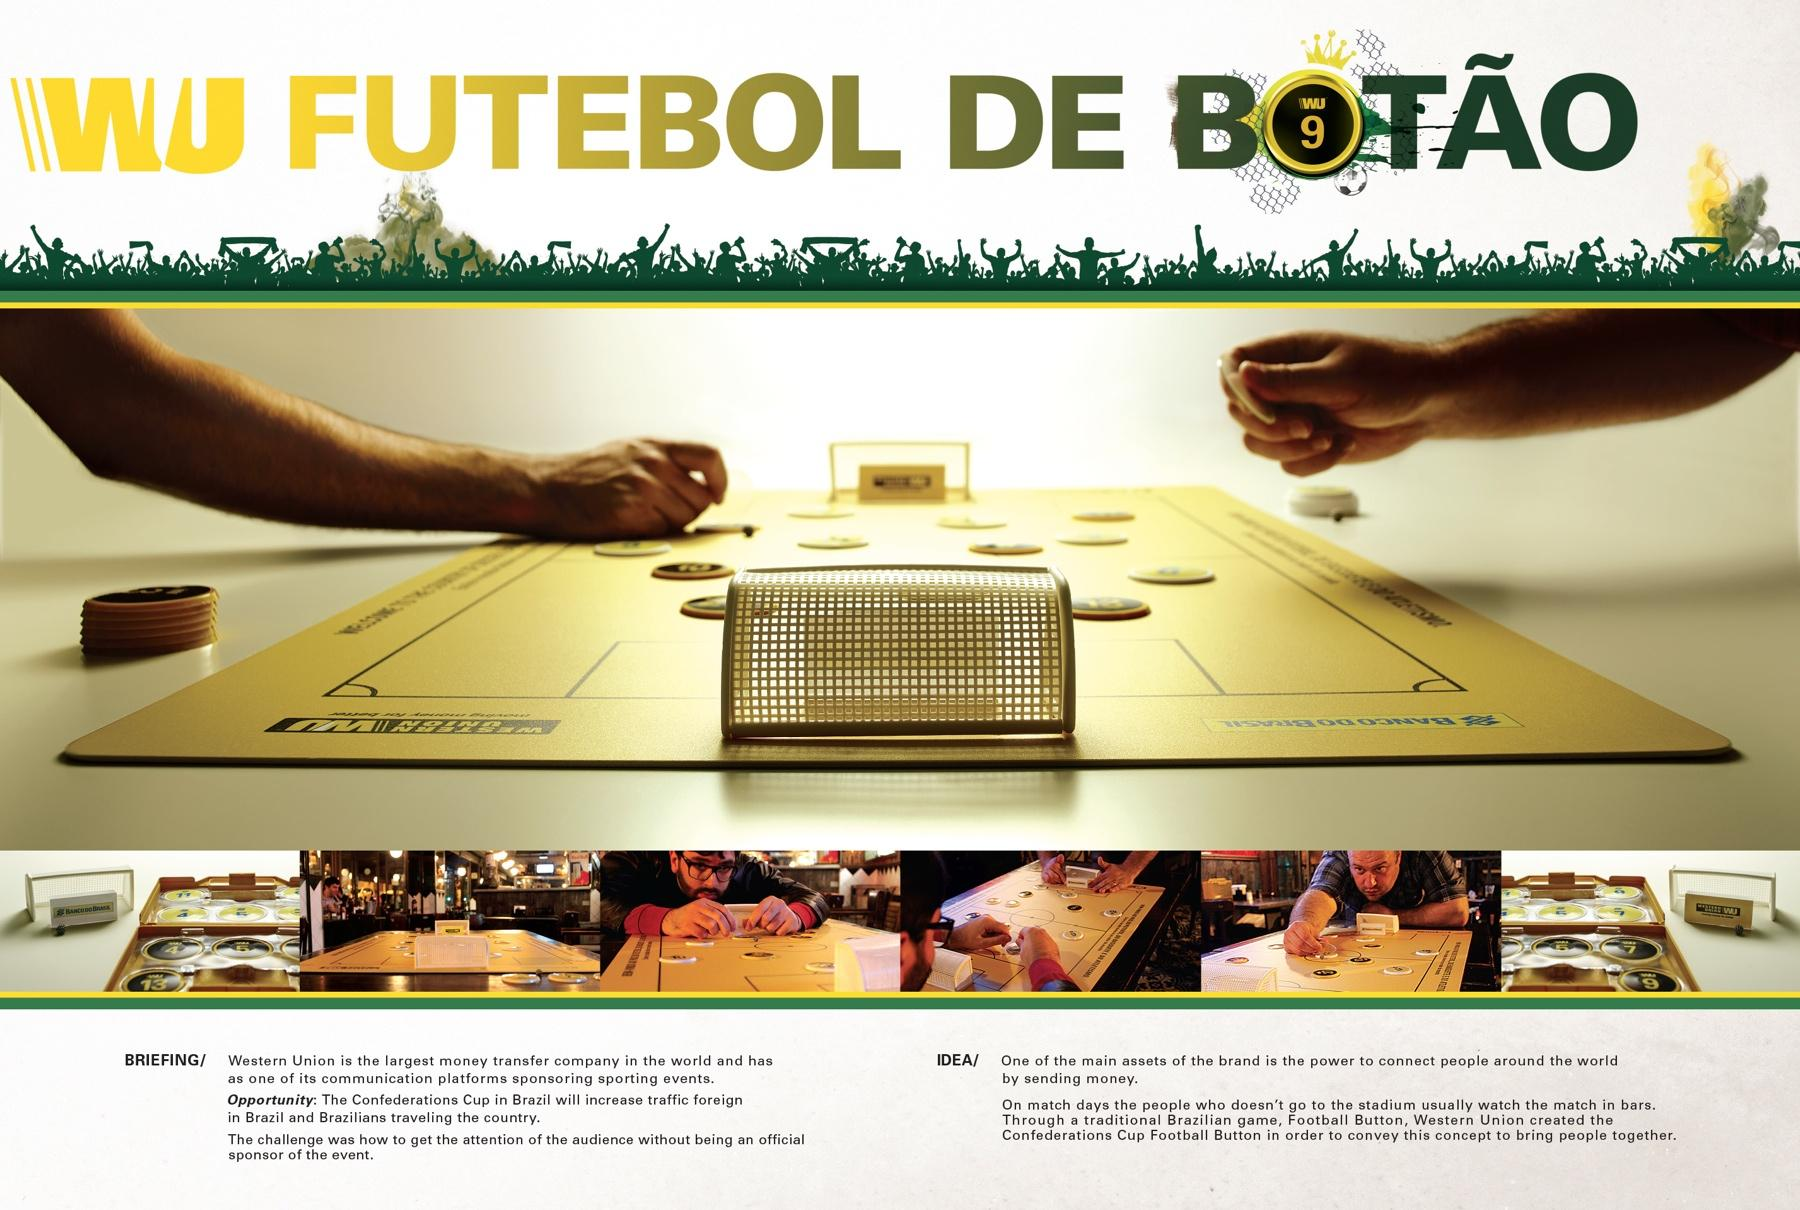 Western Union Ambient Ad -  Football button